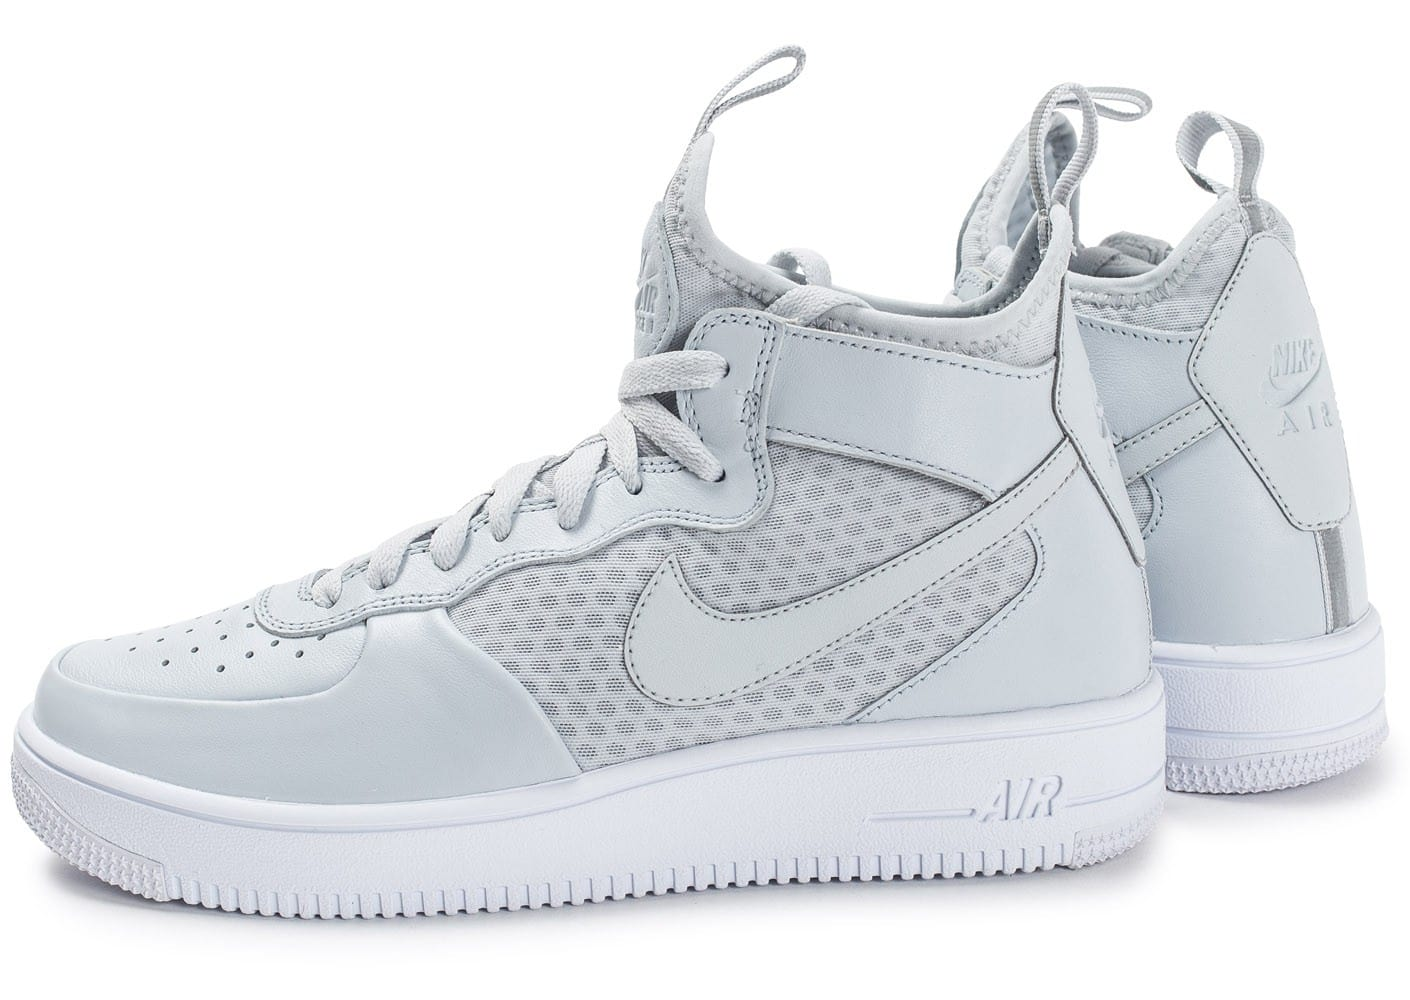 nike air force 1 ultraforce mid grise chaussures homme chausport. Black Bedroom Furniture Sets. Home Design Ideas